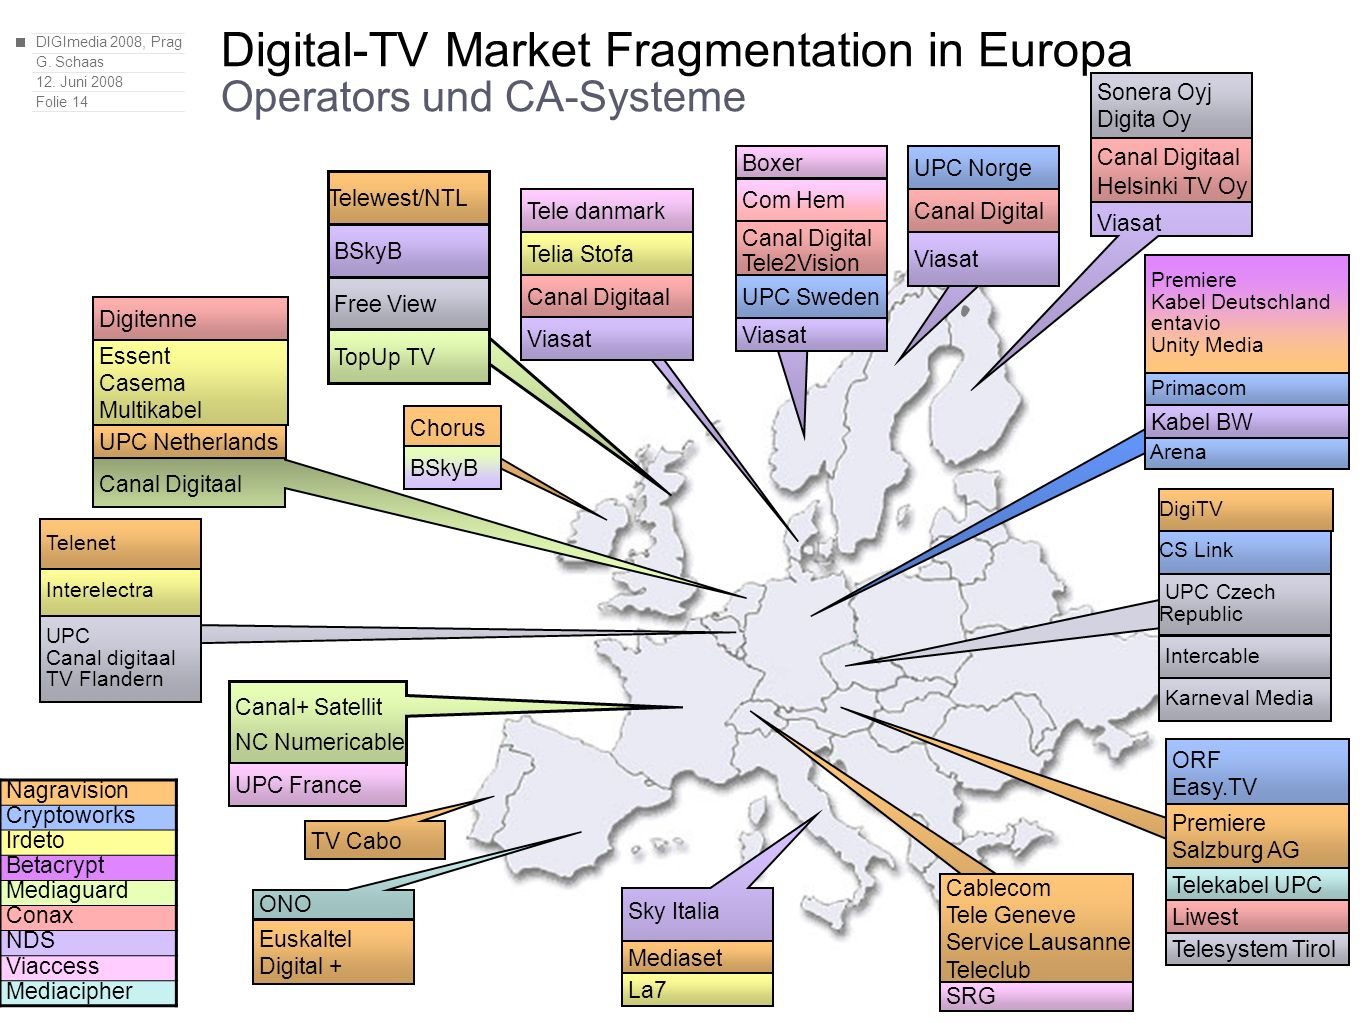 DIGImedia 2008, Prag G. Schaas 12. Juni 2008 Folie 14 TV Cabo Digital-TV Market Fragmentation in Europa Operators und CA-Systeme UPC Canal digitaal TV